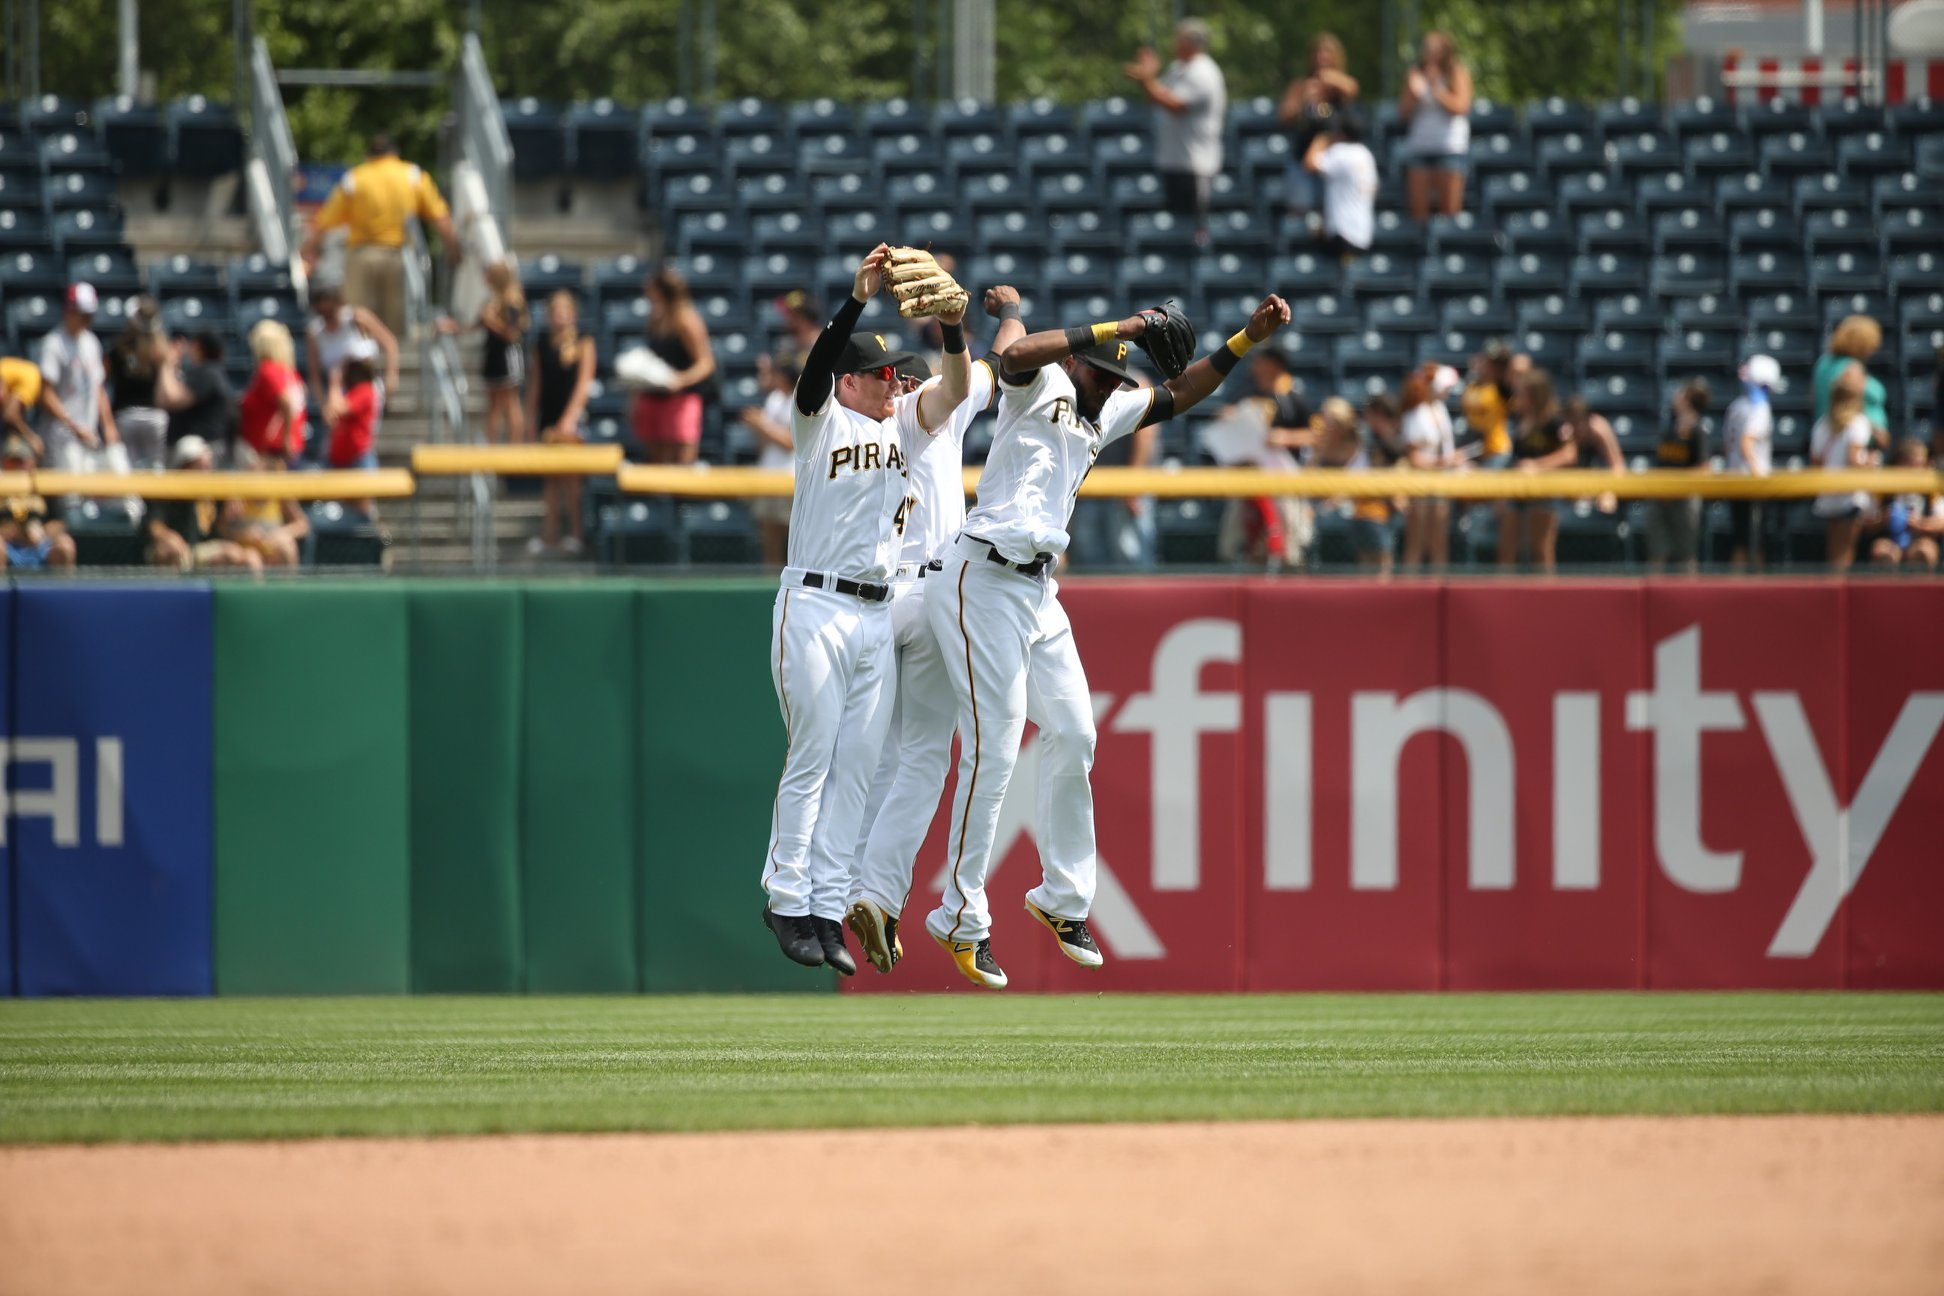 Pirates Take Series From Nationals